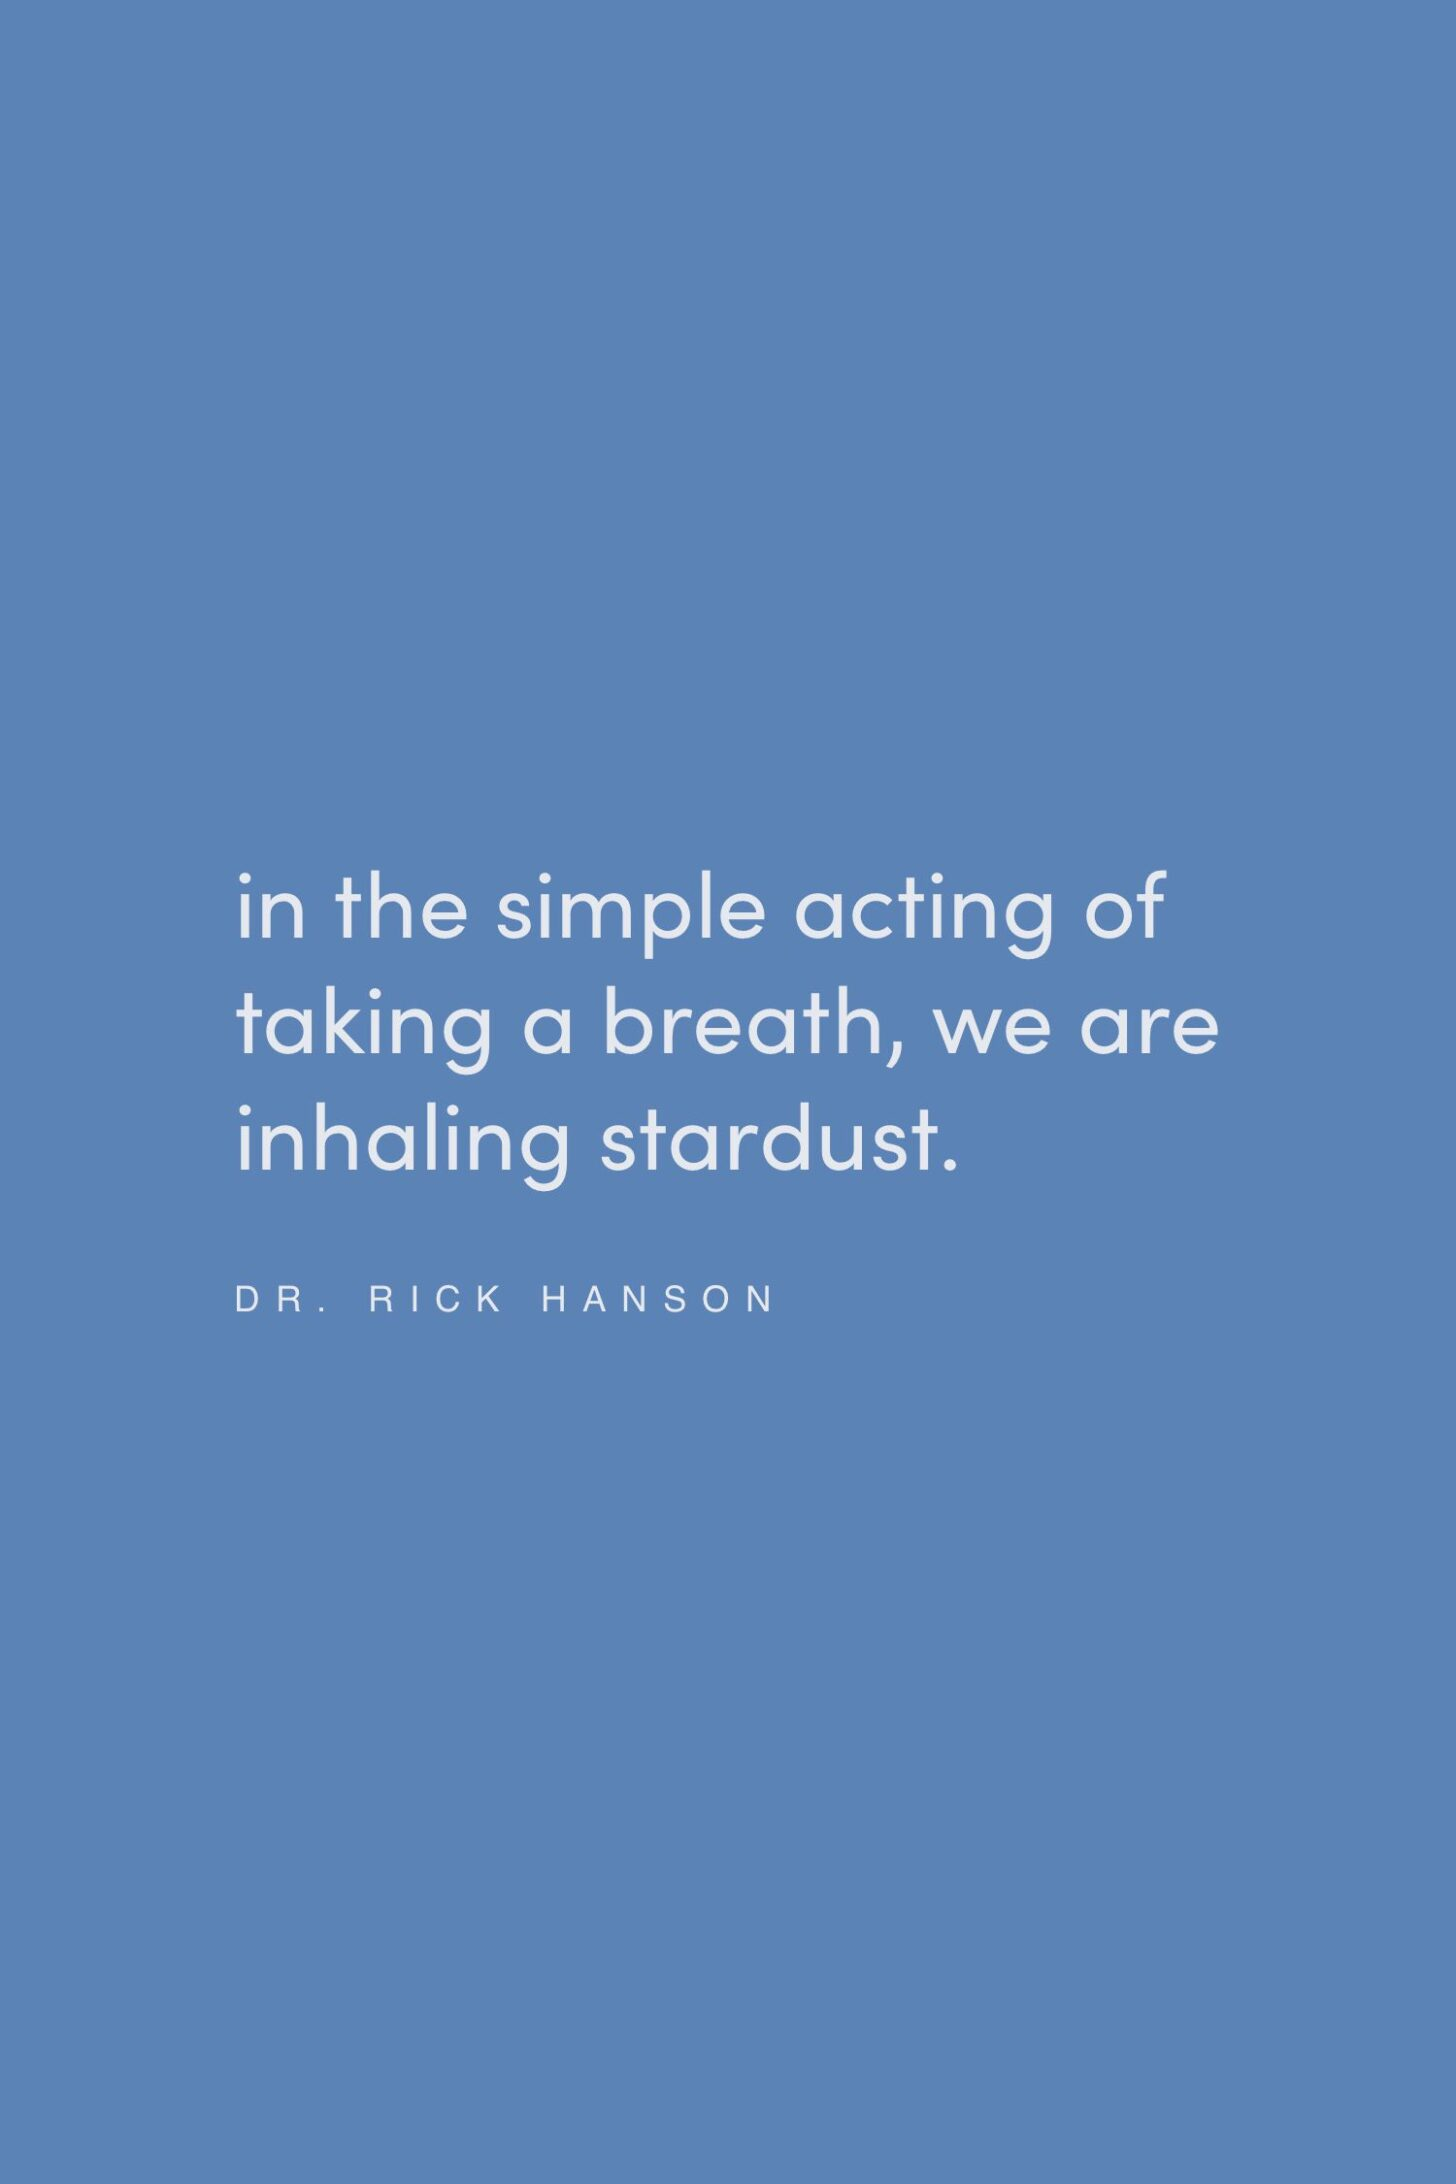 Quote on breath by Dr. Rick Hanson on the Feel Good Effect Podcast #realfoodwholelife #feelgoodeffectpodcast #resiliencequote #selflovequote #selfcarequote #mindfulnessquote #motivationalquote #inspirationalquote #positivityquote